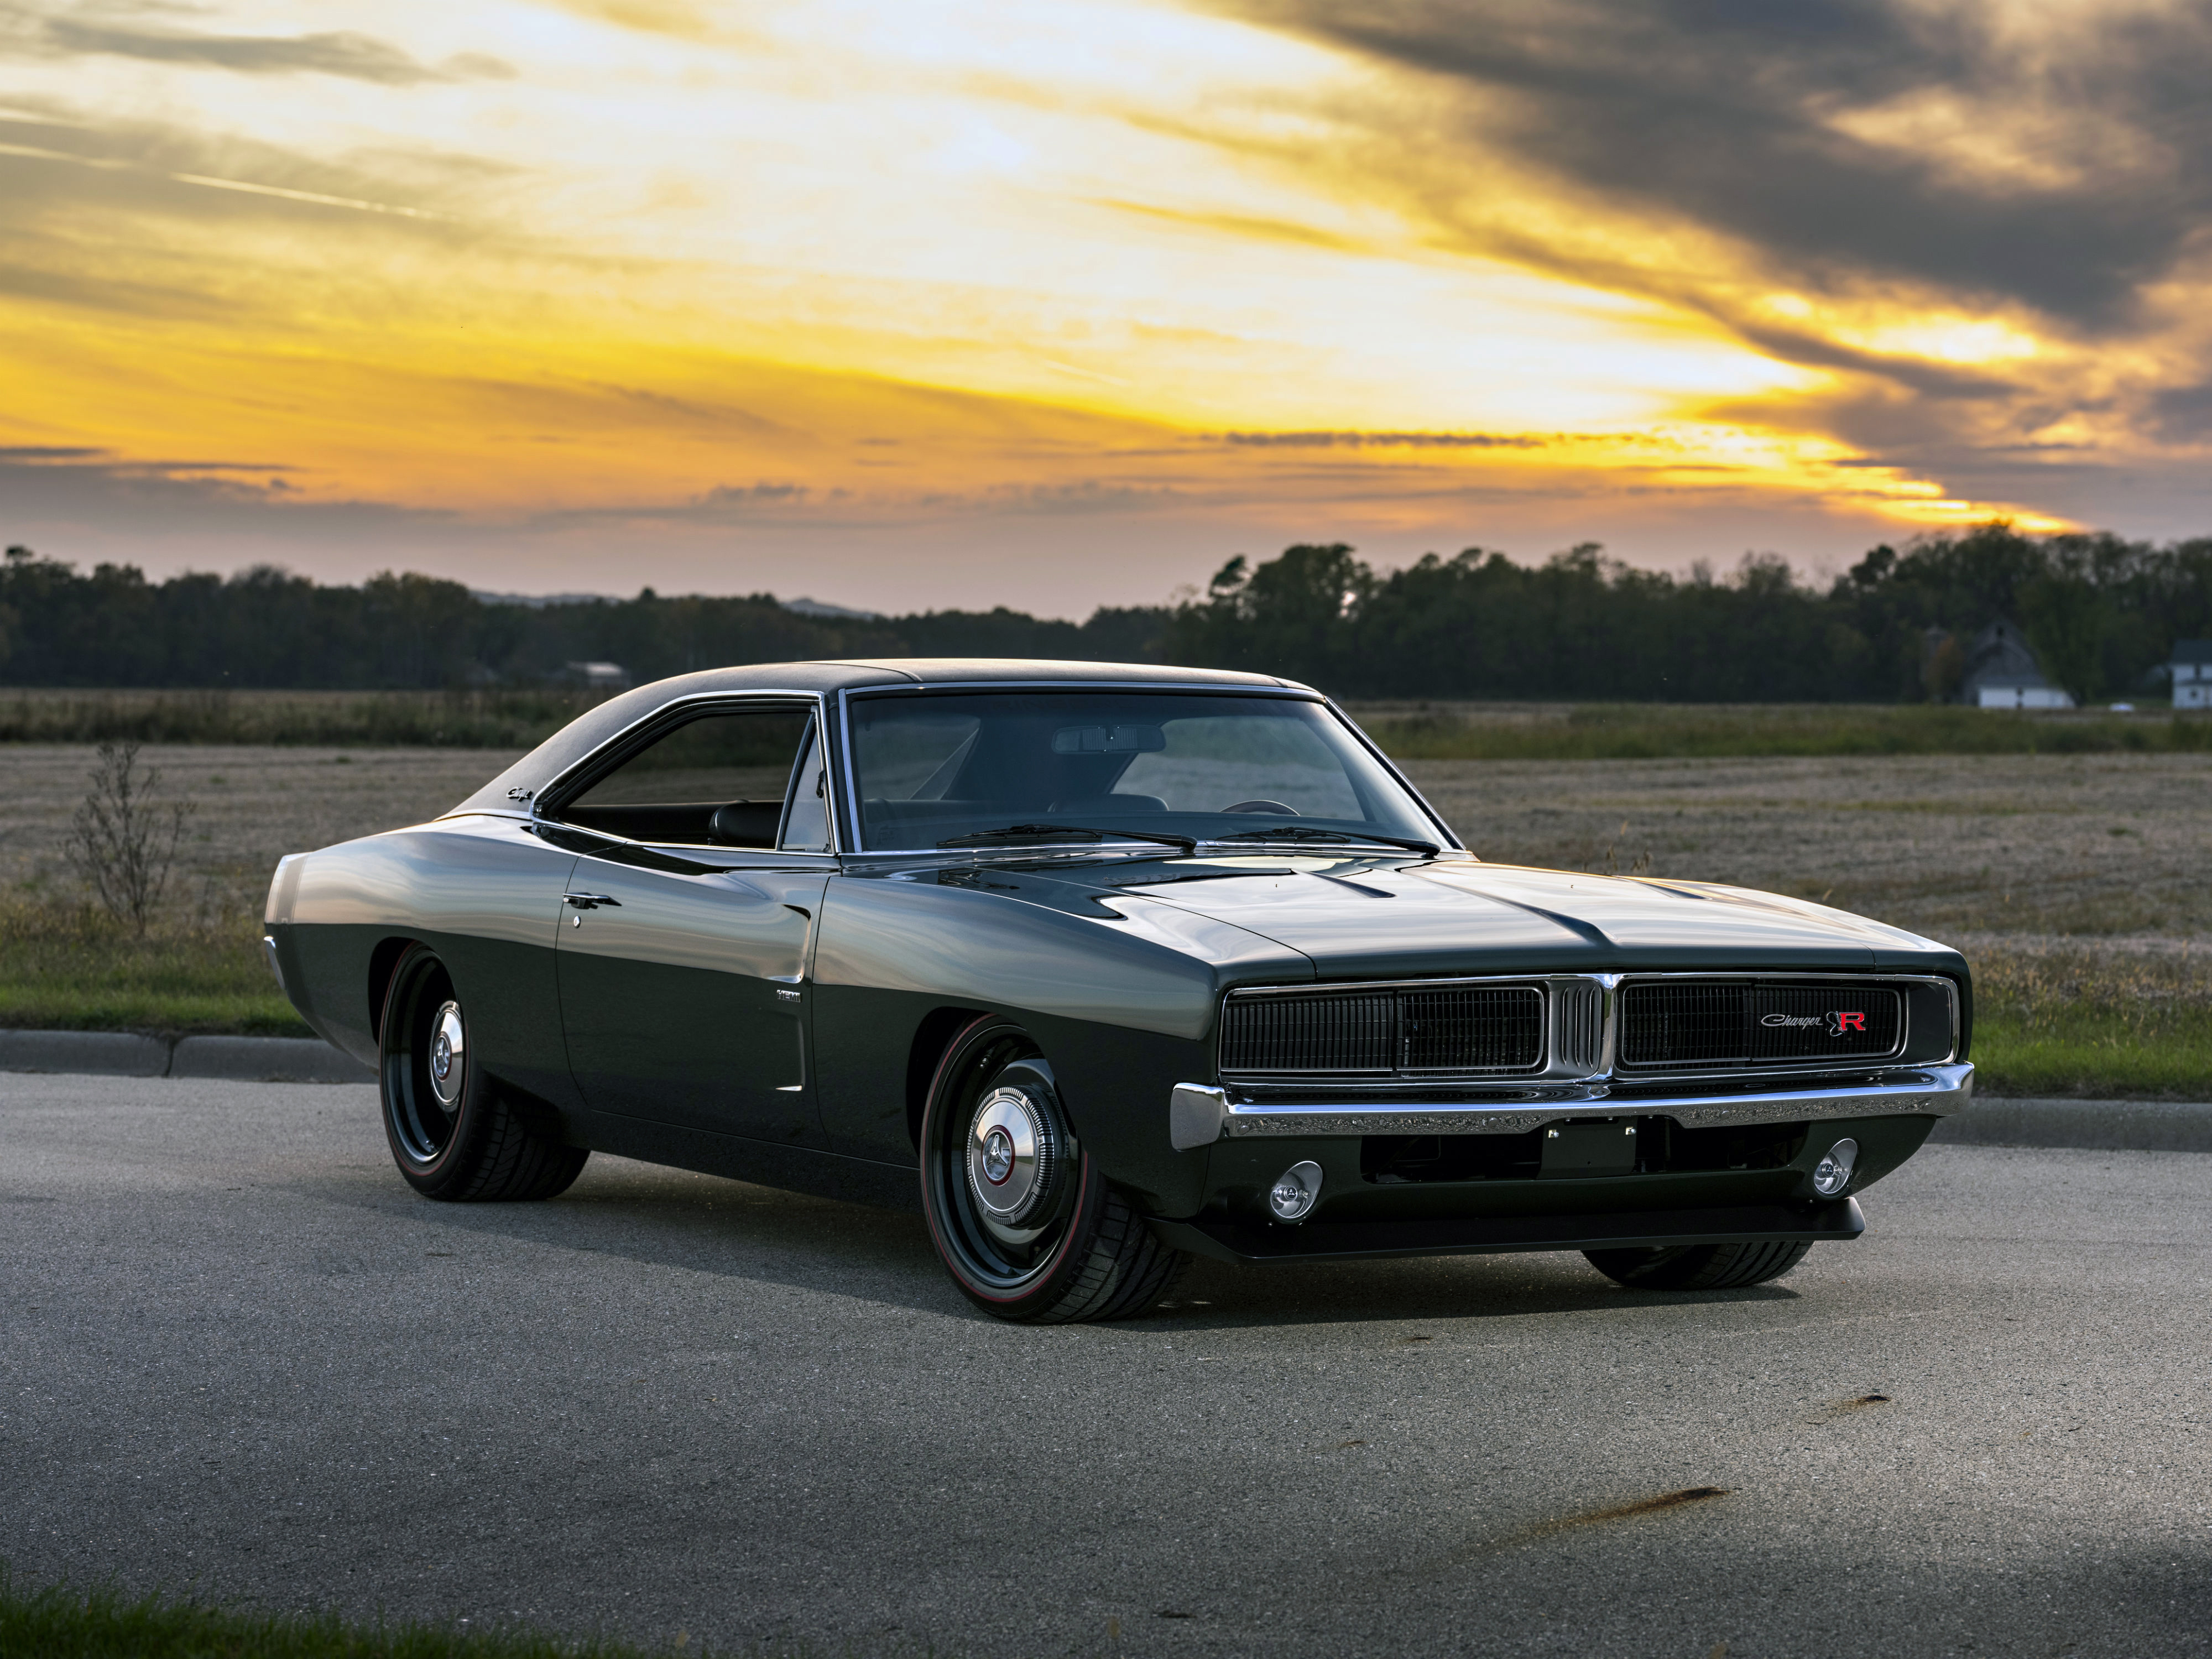 1969 Ringbrothers Dodge Charger Defector Front View Hd Cars 4k